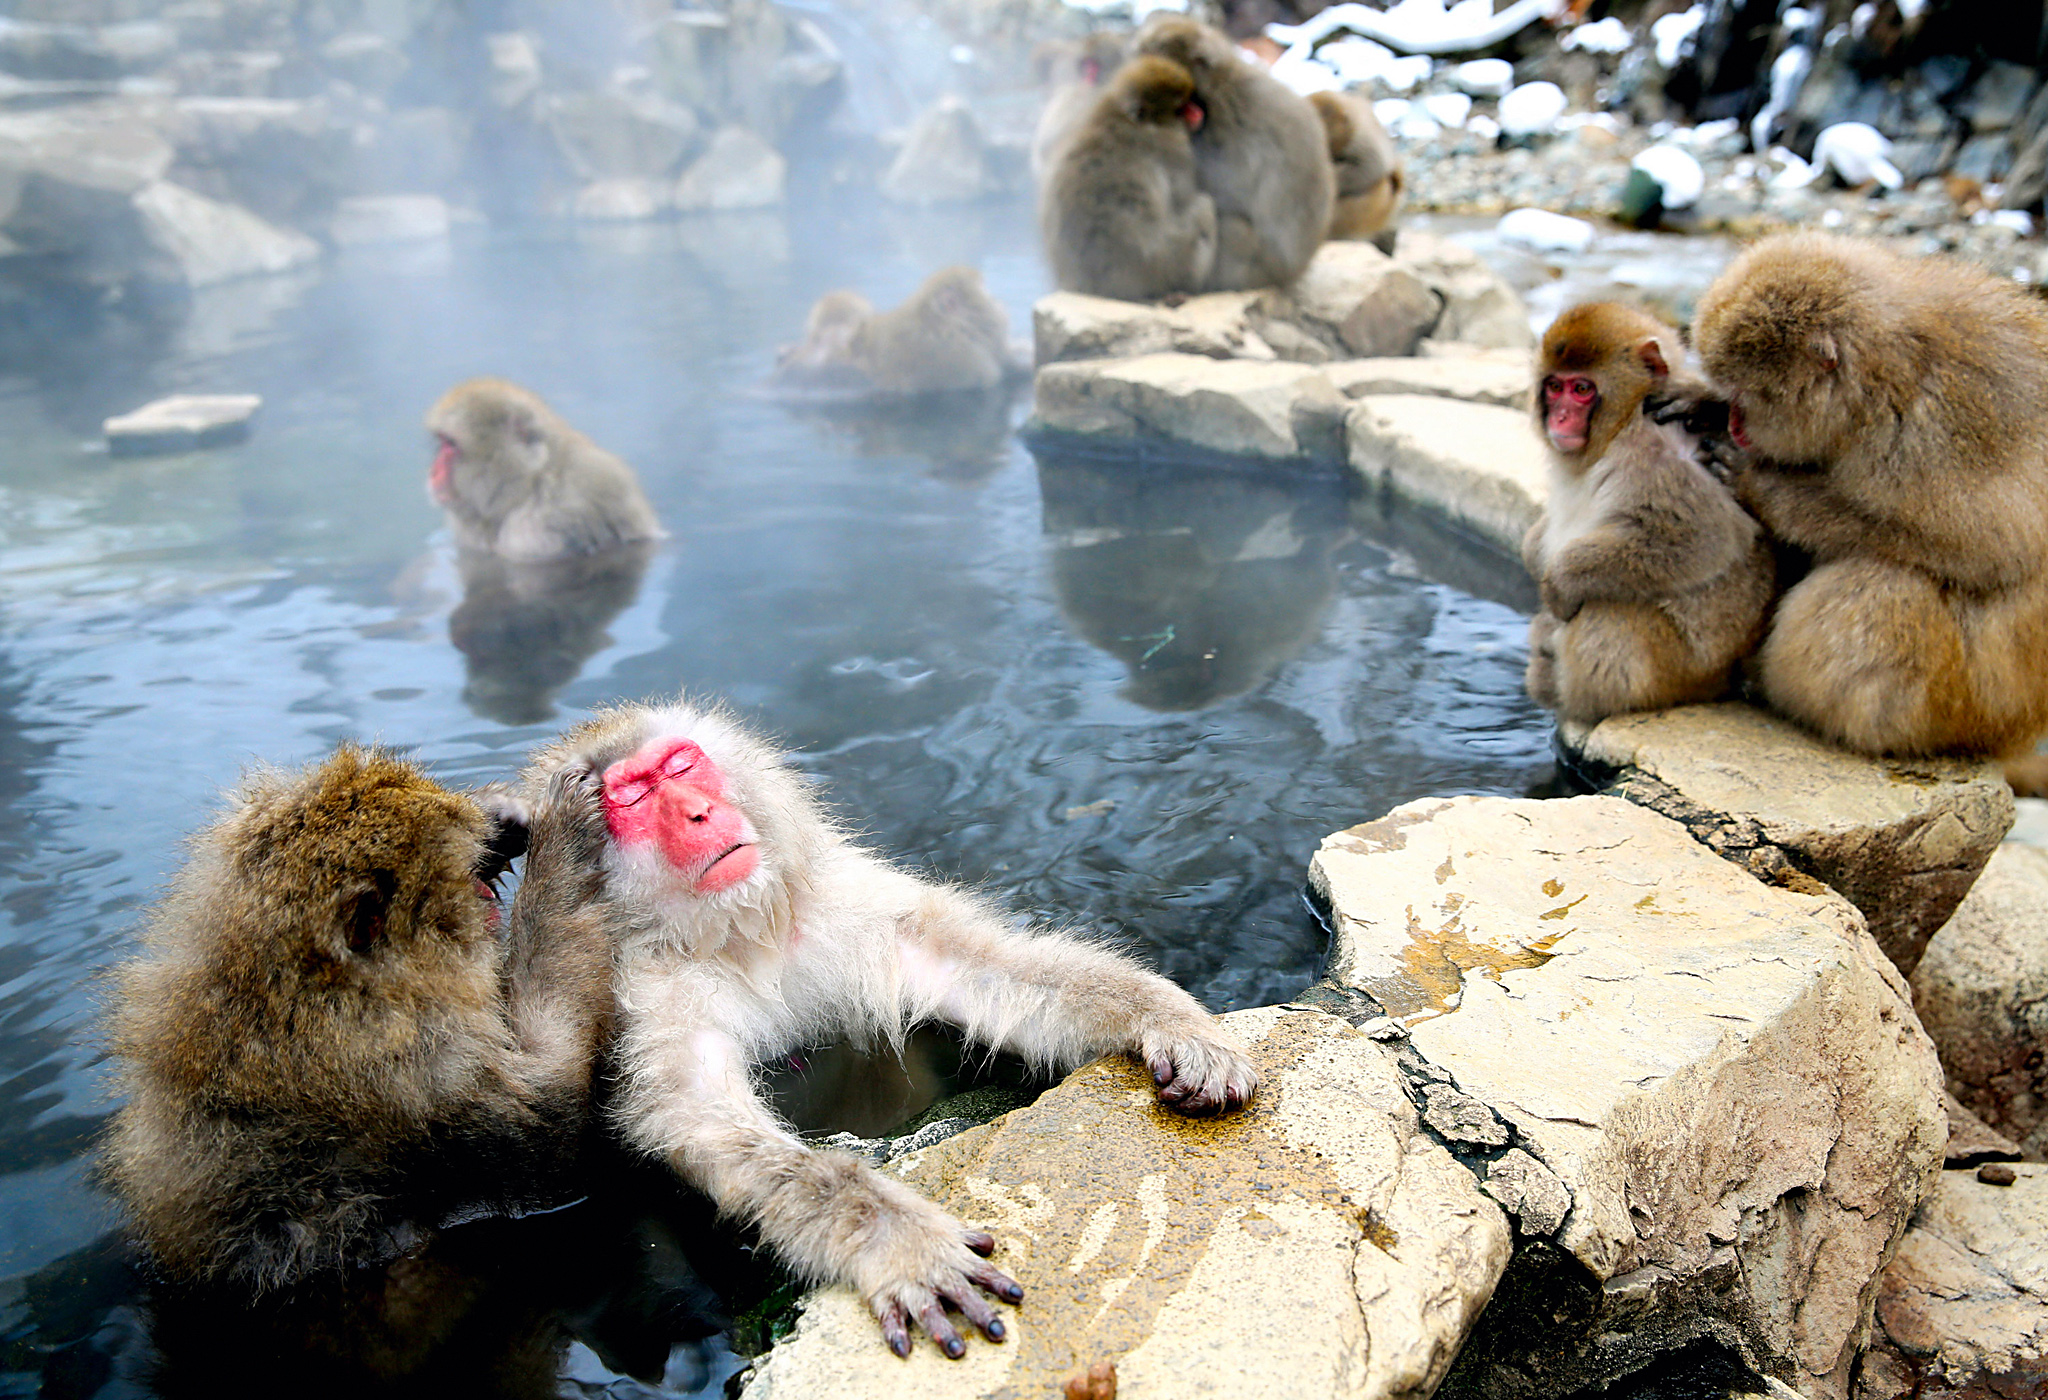 ***BESTPIX*** Japanese Macaque Monkeys Relax In Hot Springs...YAMANOUCHI, JAPAN - JANUARY 08:  (CHINA OUT, SOUTH KOREA OUT) Japanese Macaque monkeys groom each other and relax in a hot spring at the Jigokudani, or Hell's Valley Monkey Park on January 8, 2014 in Yamanouchi, Nagano, Japan.